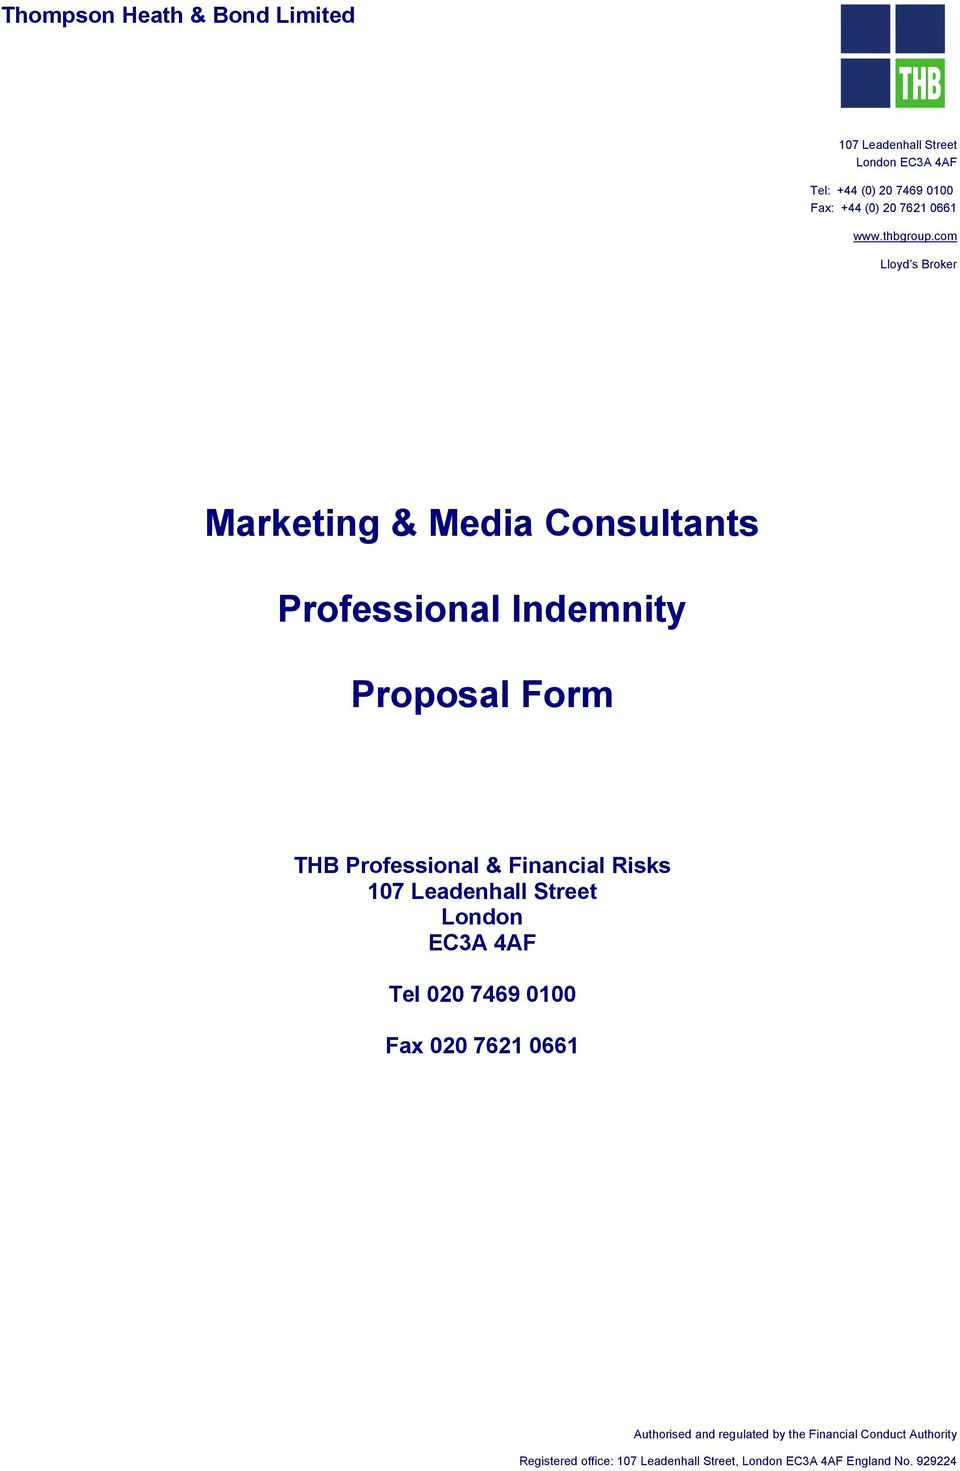 com Lloyd s Broker Marketing & Media Consultants Professional Indemnity Proposal Form THB Professional & Financial